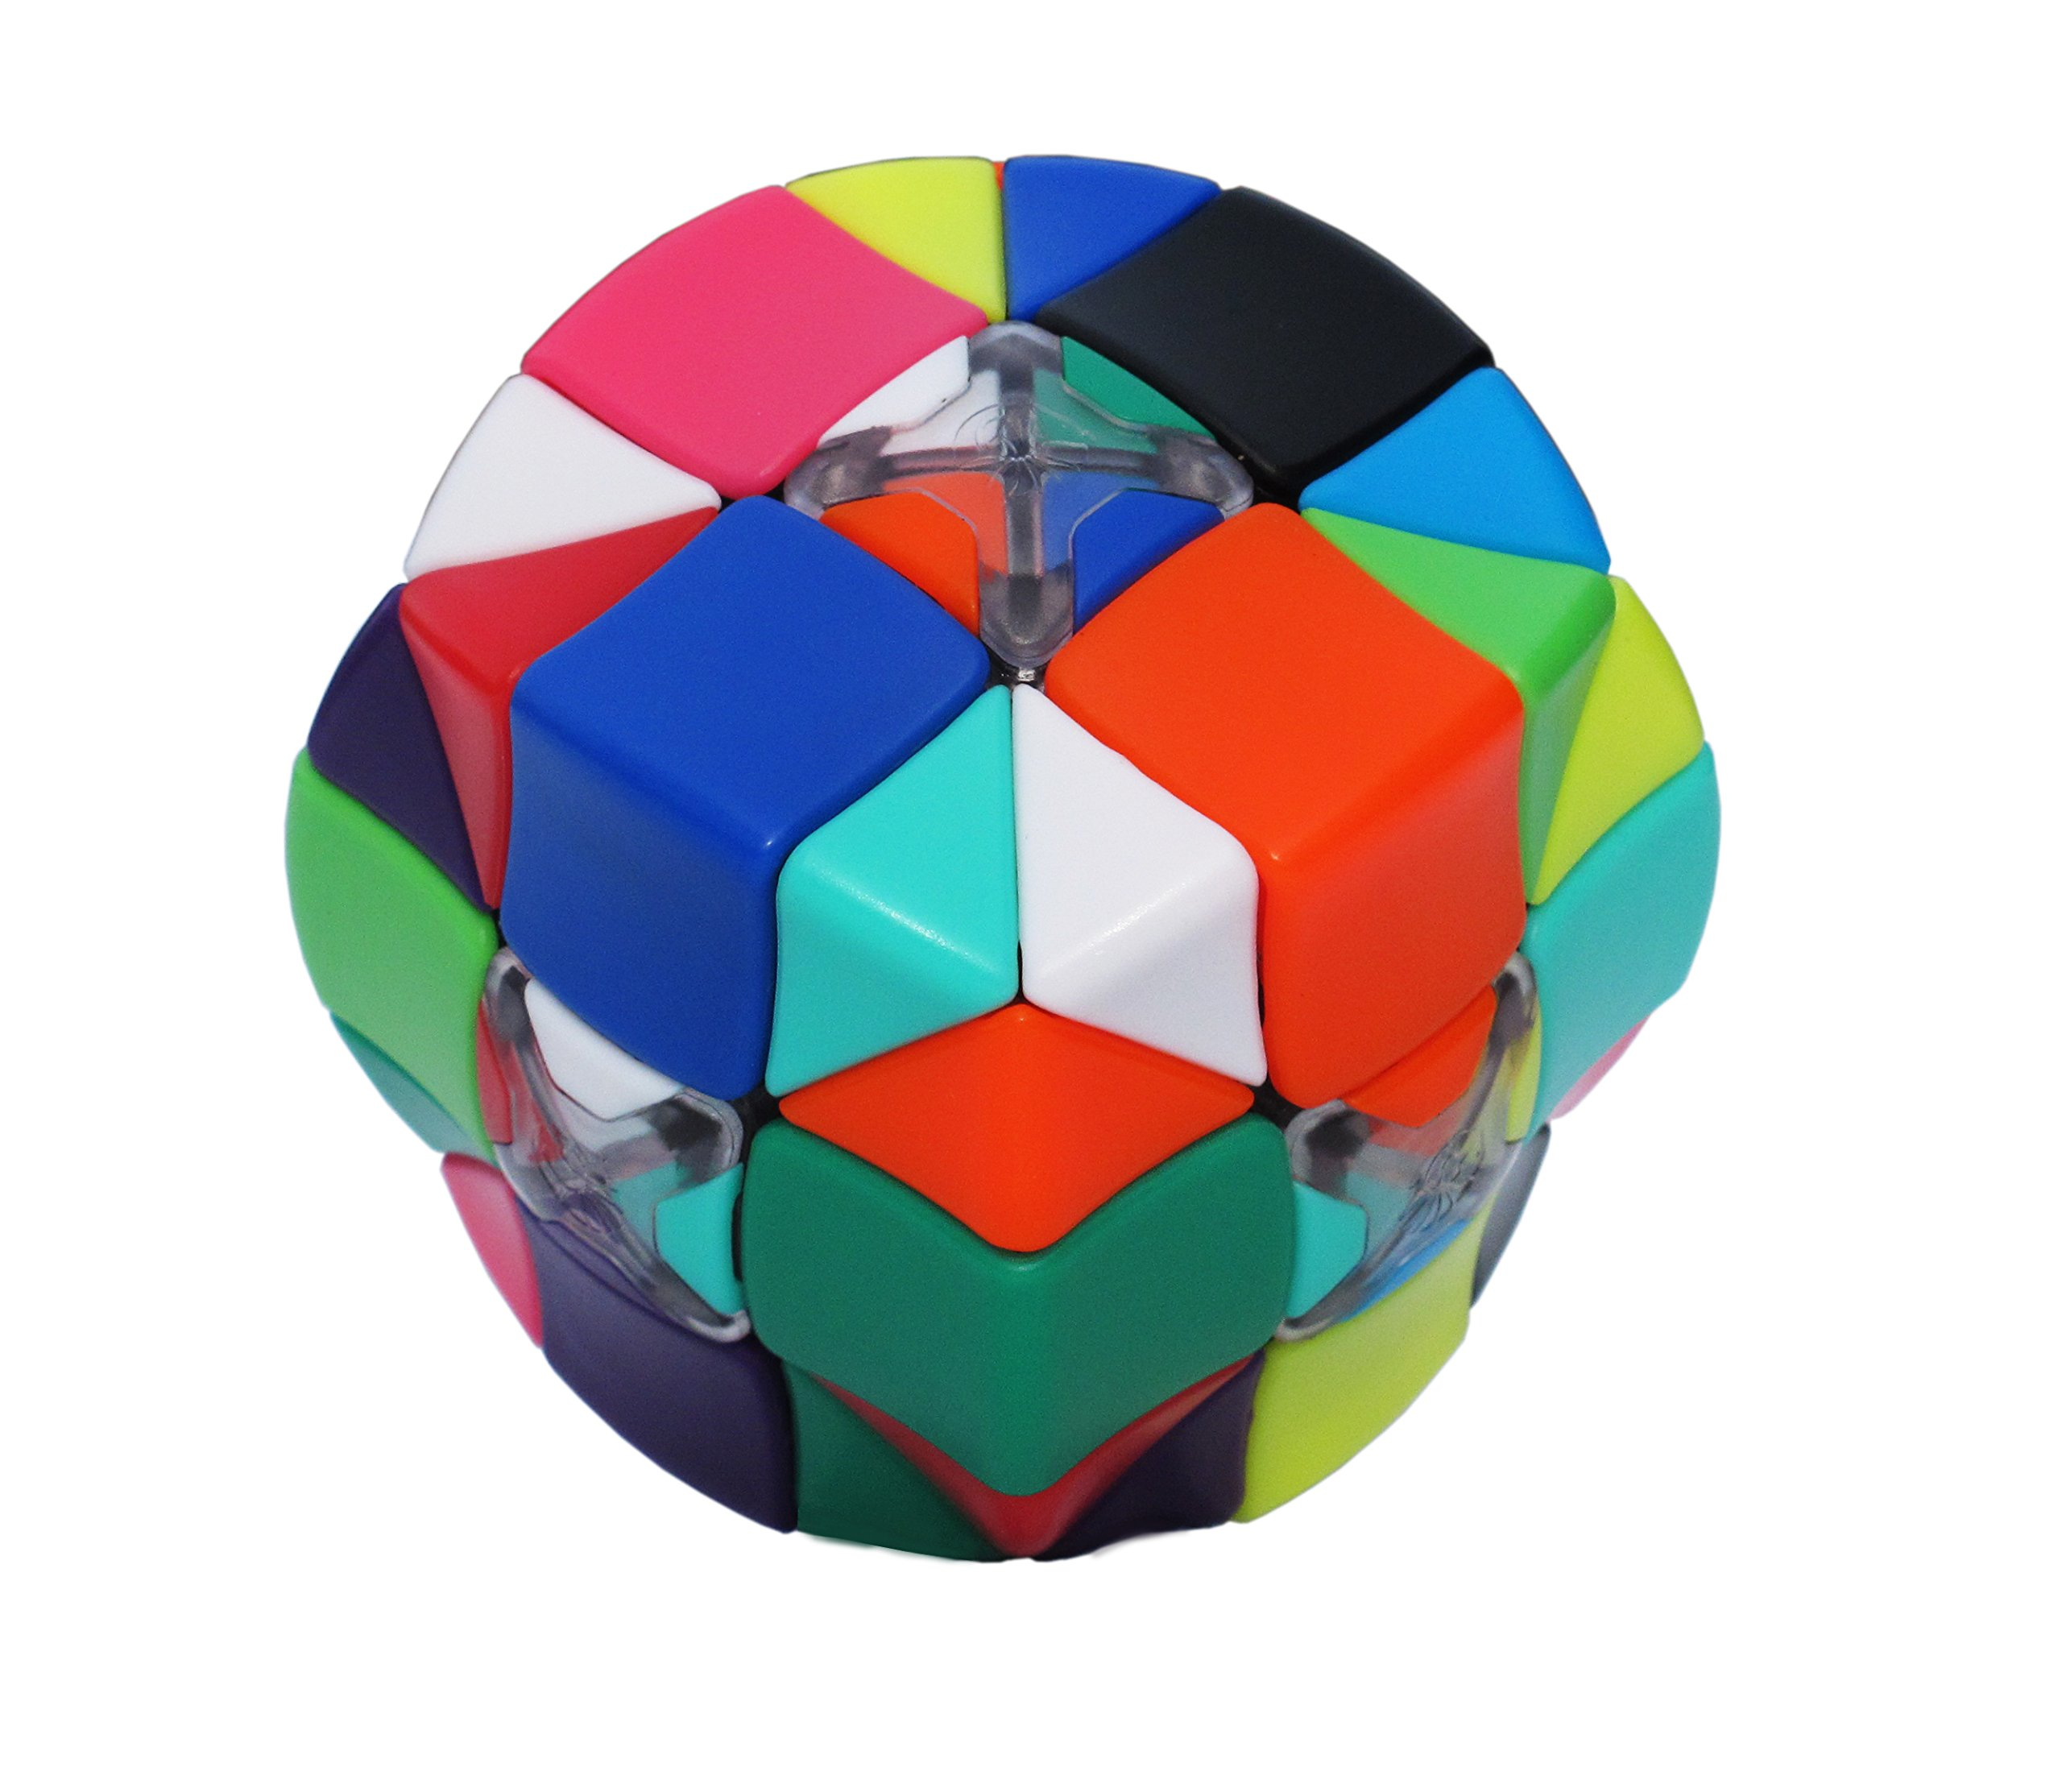 Armadillo Cube: Smooth turning - Stickerless - 12 Candy Colors - Resettable - Awesome Brain Teaser - Advanced 3x3x3 Puzzle - Brand New Challenges - 100% Money Back Guarantee! by Armadillo Cube (Image #5)